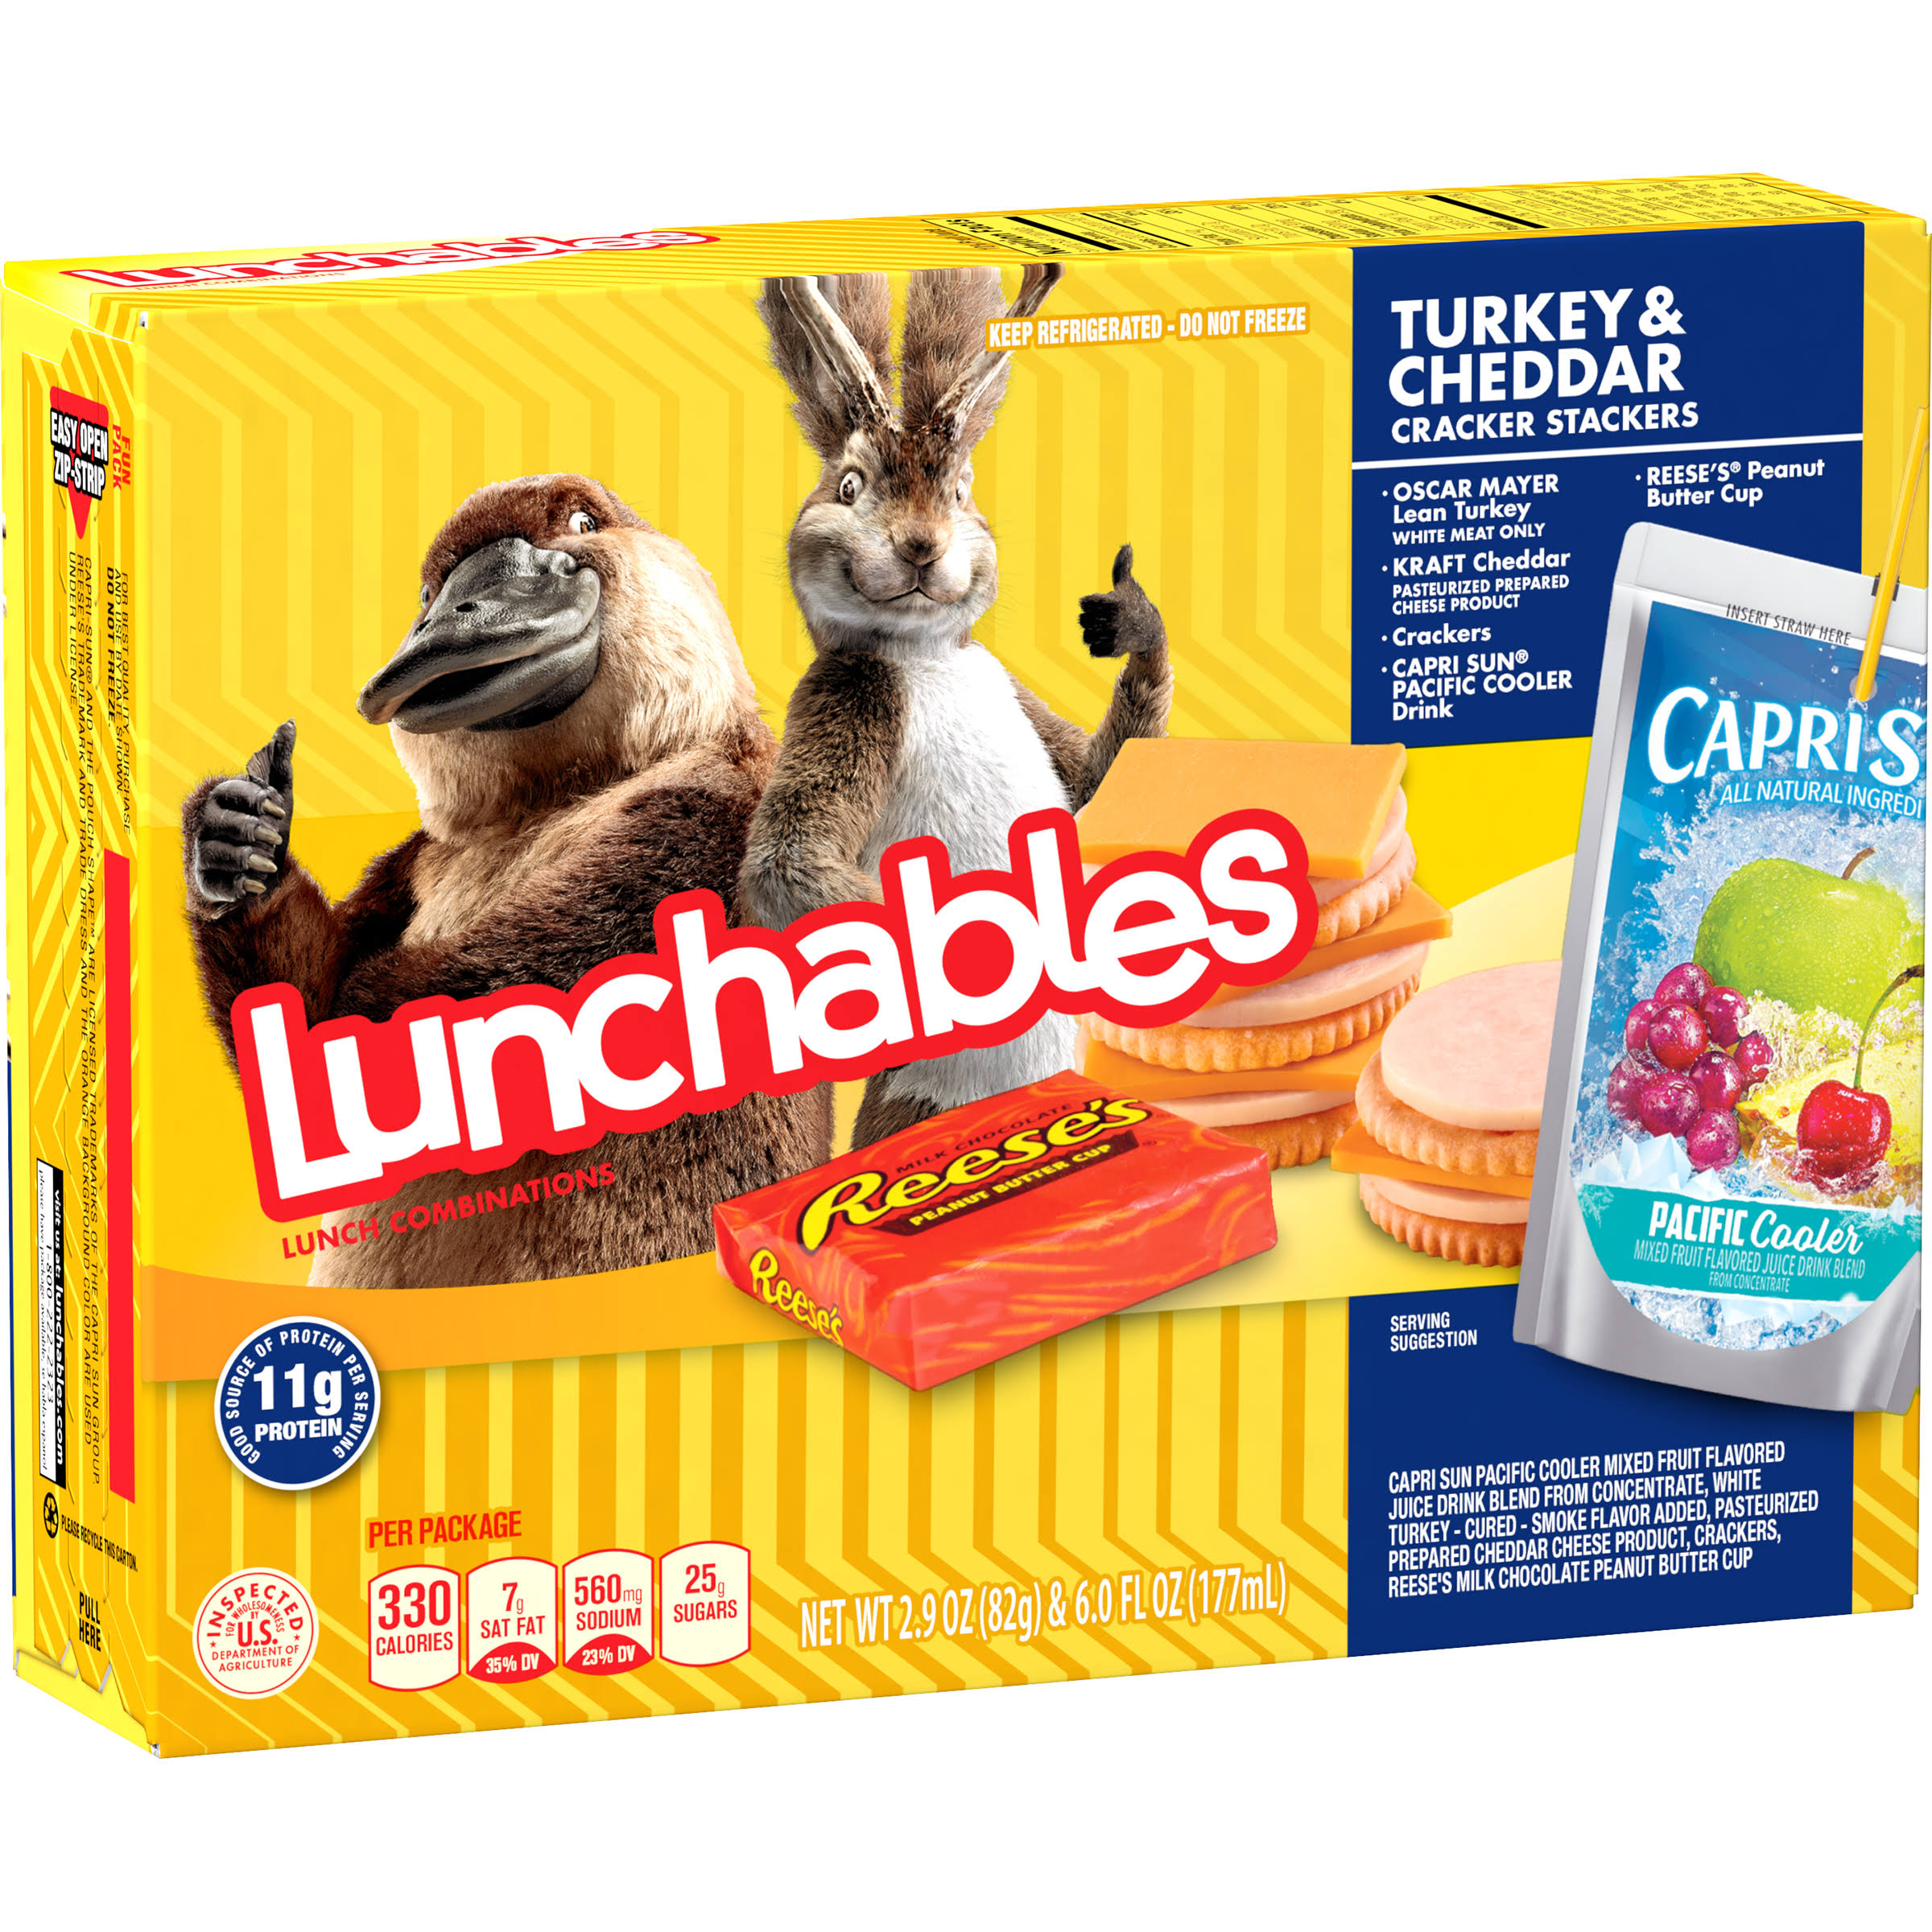 Lunchables Lunch Combinations, Turkey & Cheddar, Cracker Stacker